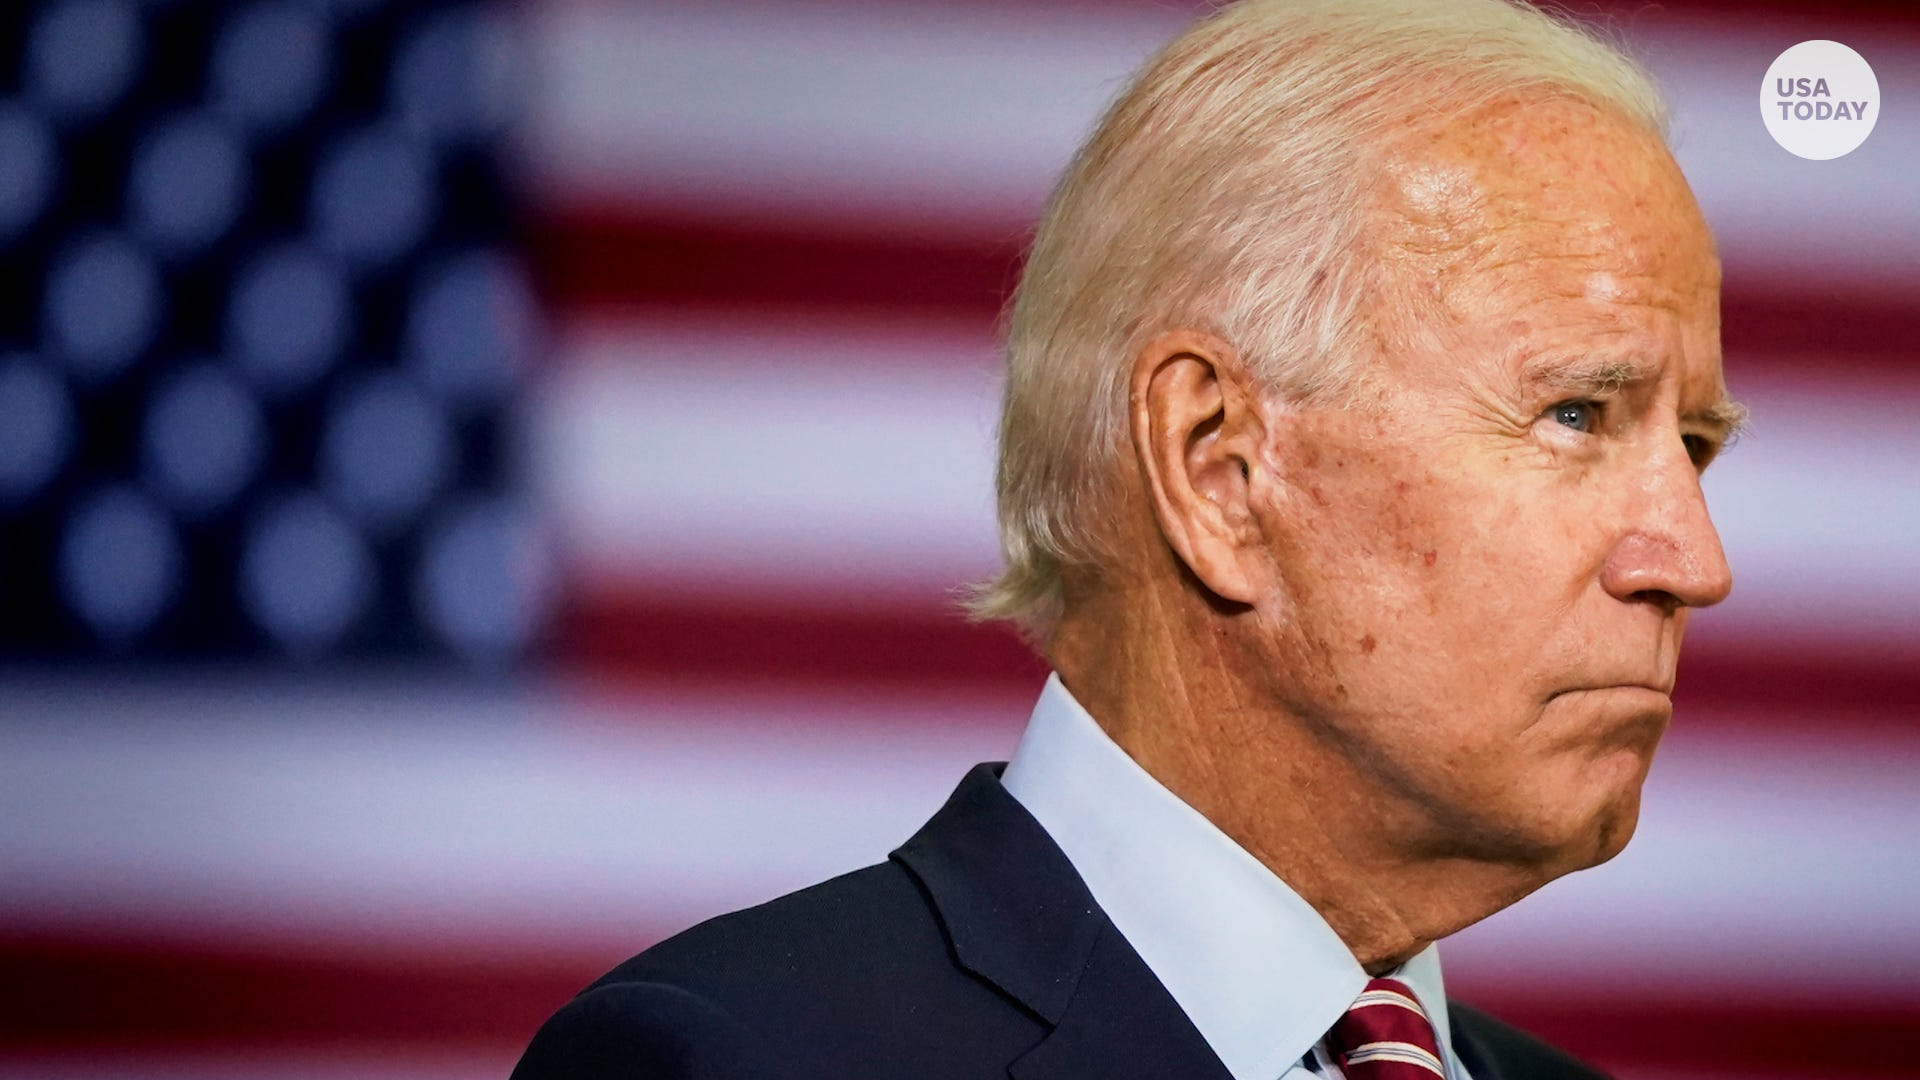 Joe Biden endorsed, Trump ripped by nearly 500 retired military, national security officials